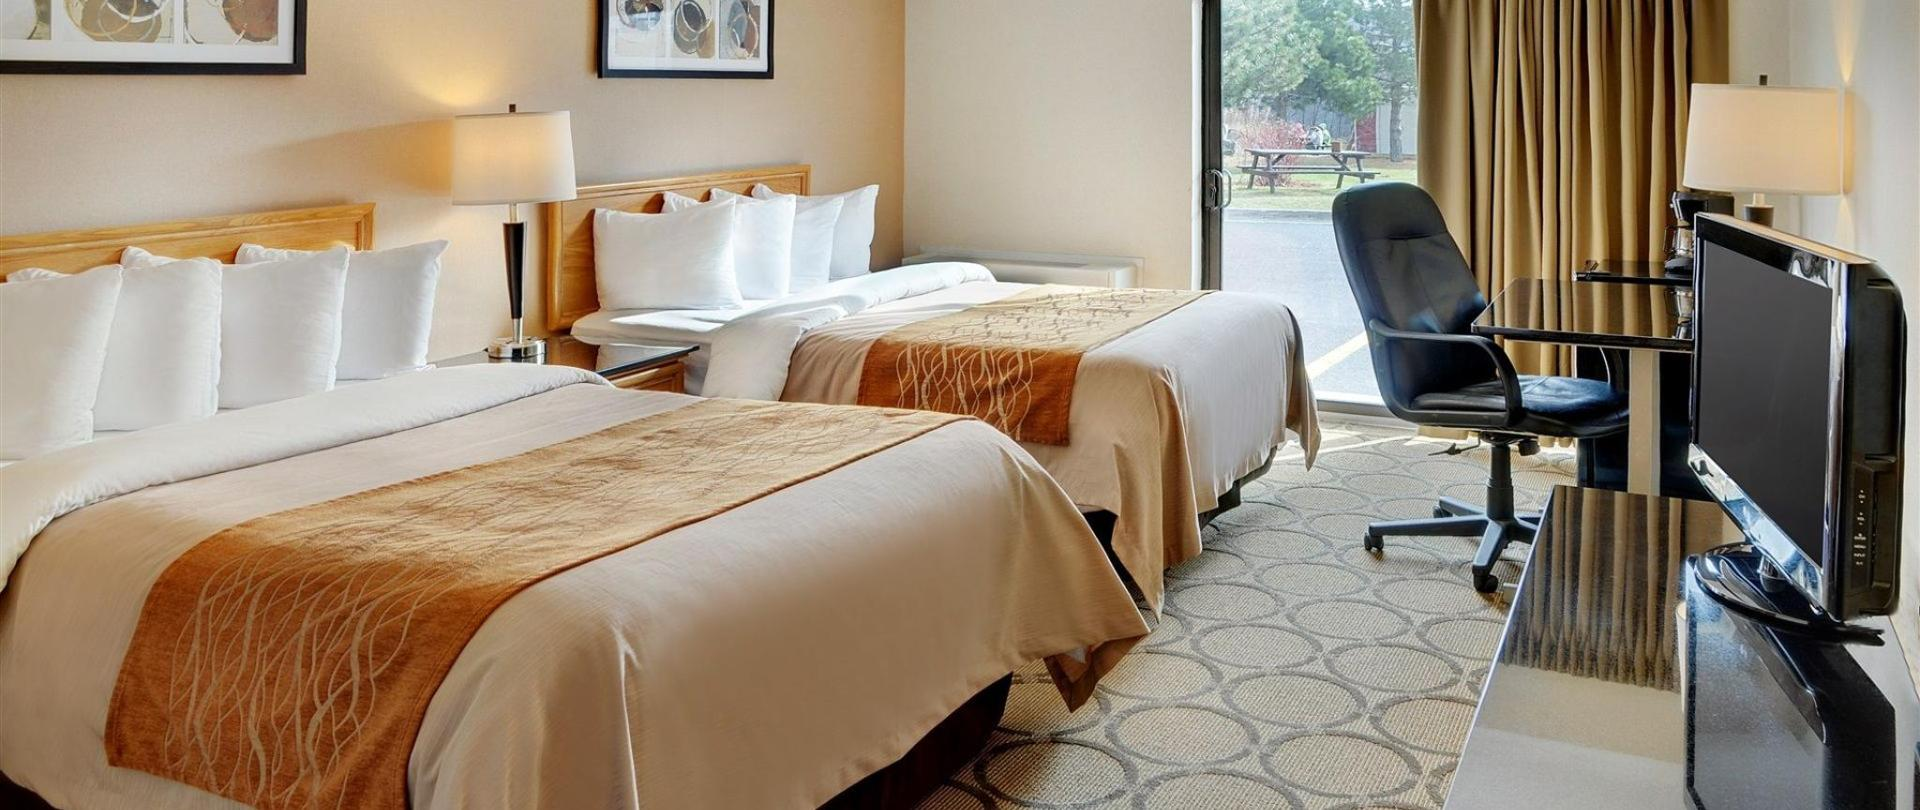 guestroom-with-two-pillowtop-beds-drive-up-patio-door-access1.jpg